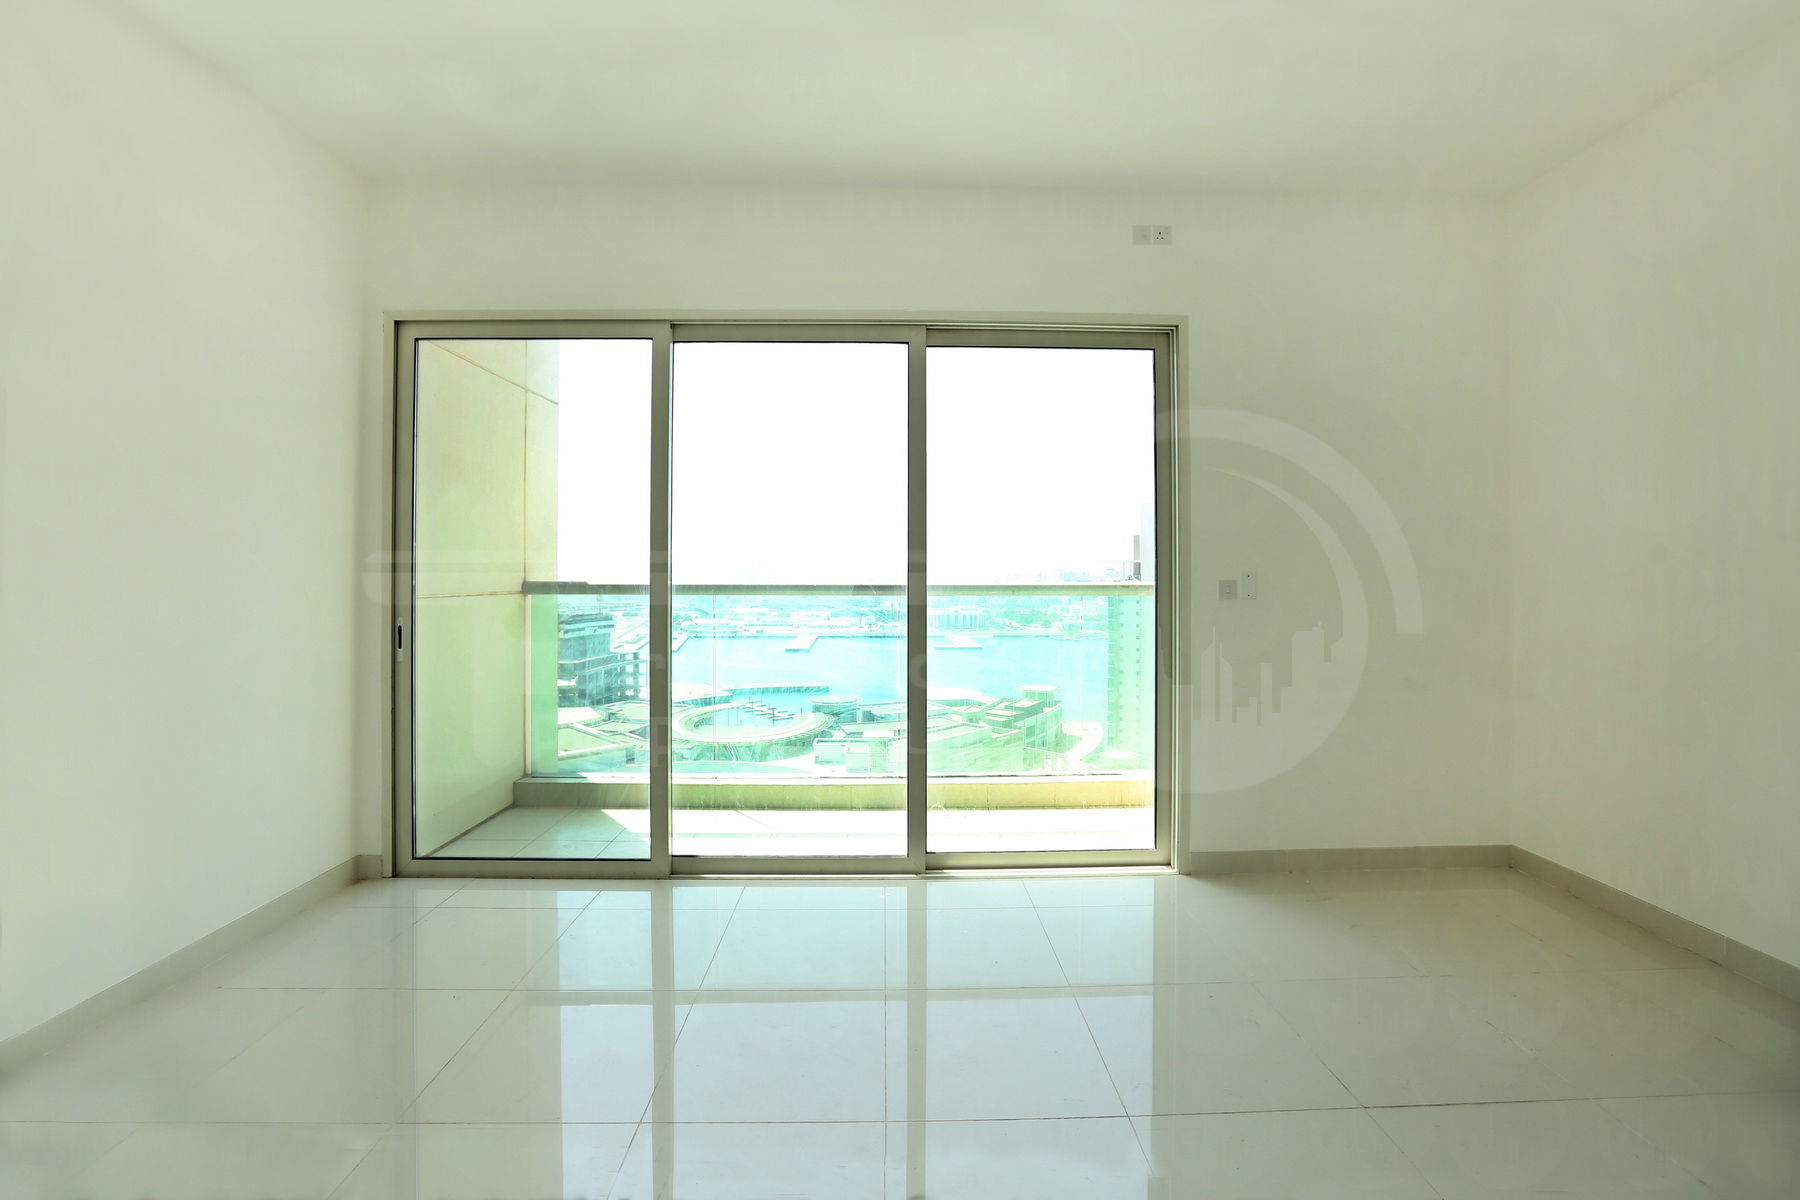 1 Bedroom Apartment - Abu Dhabi - UAE - Al Maha Tower - Al Reem Island (9).JPG